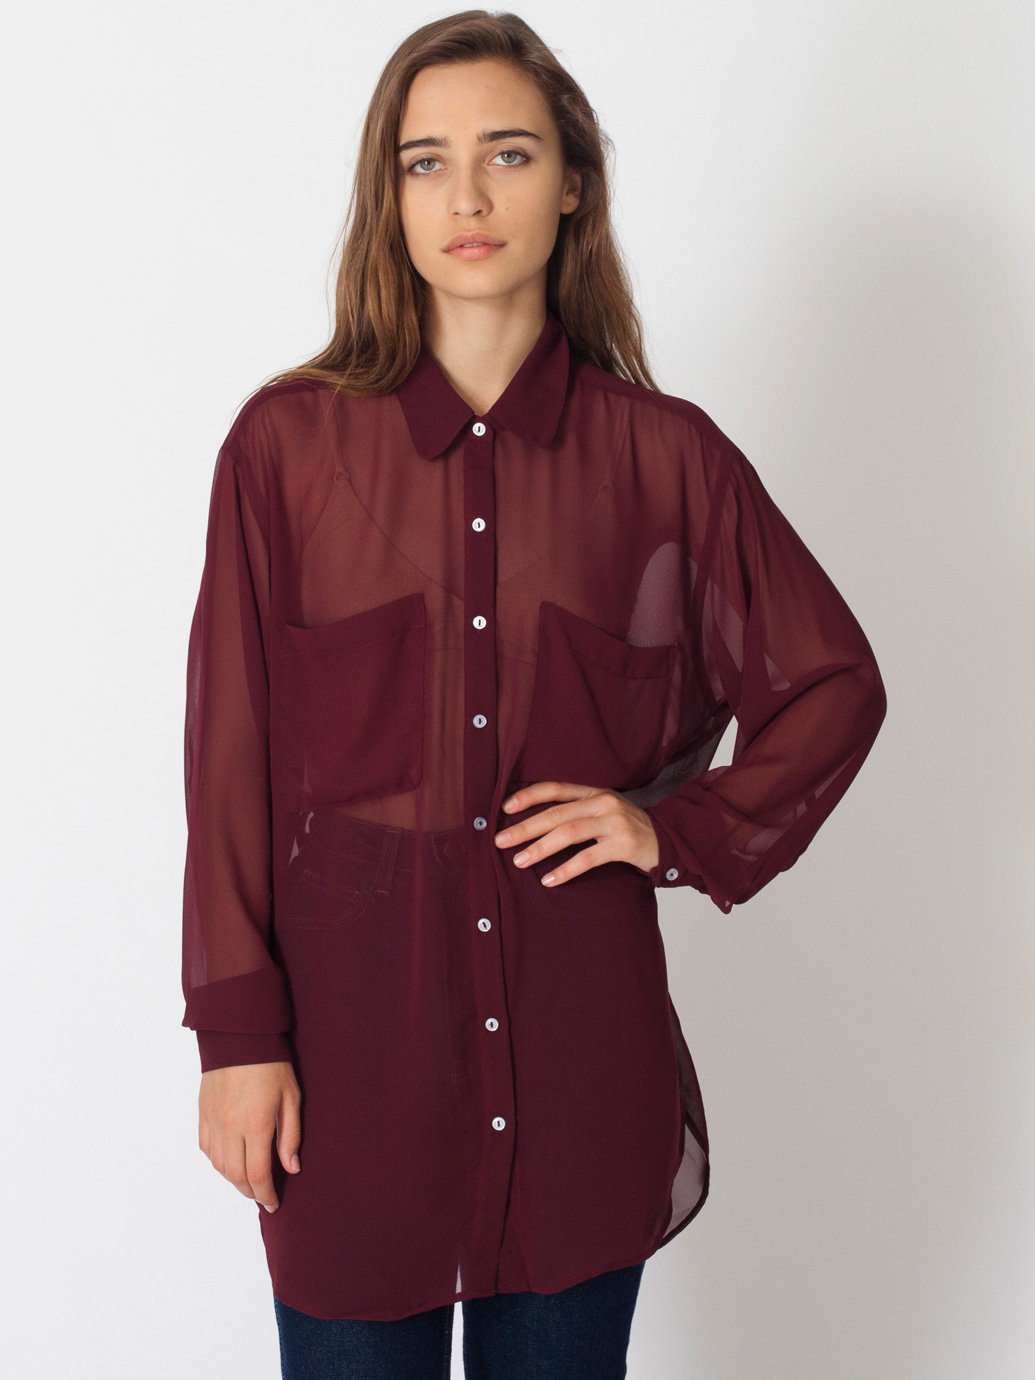 Chiffon Oversized Button-Up | American Apparel